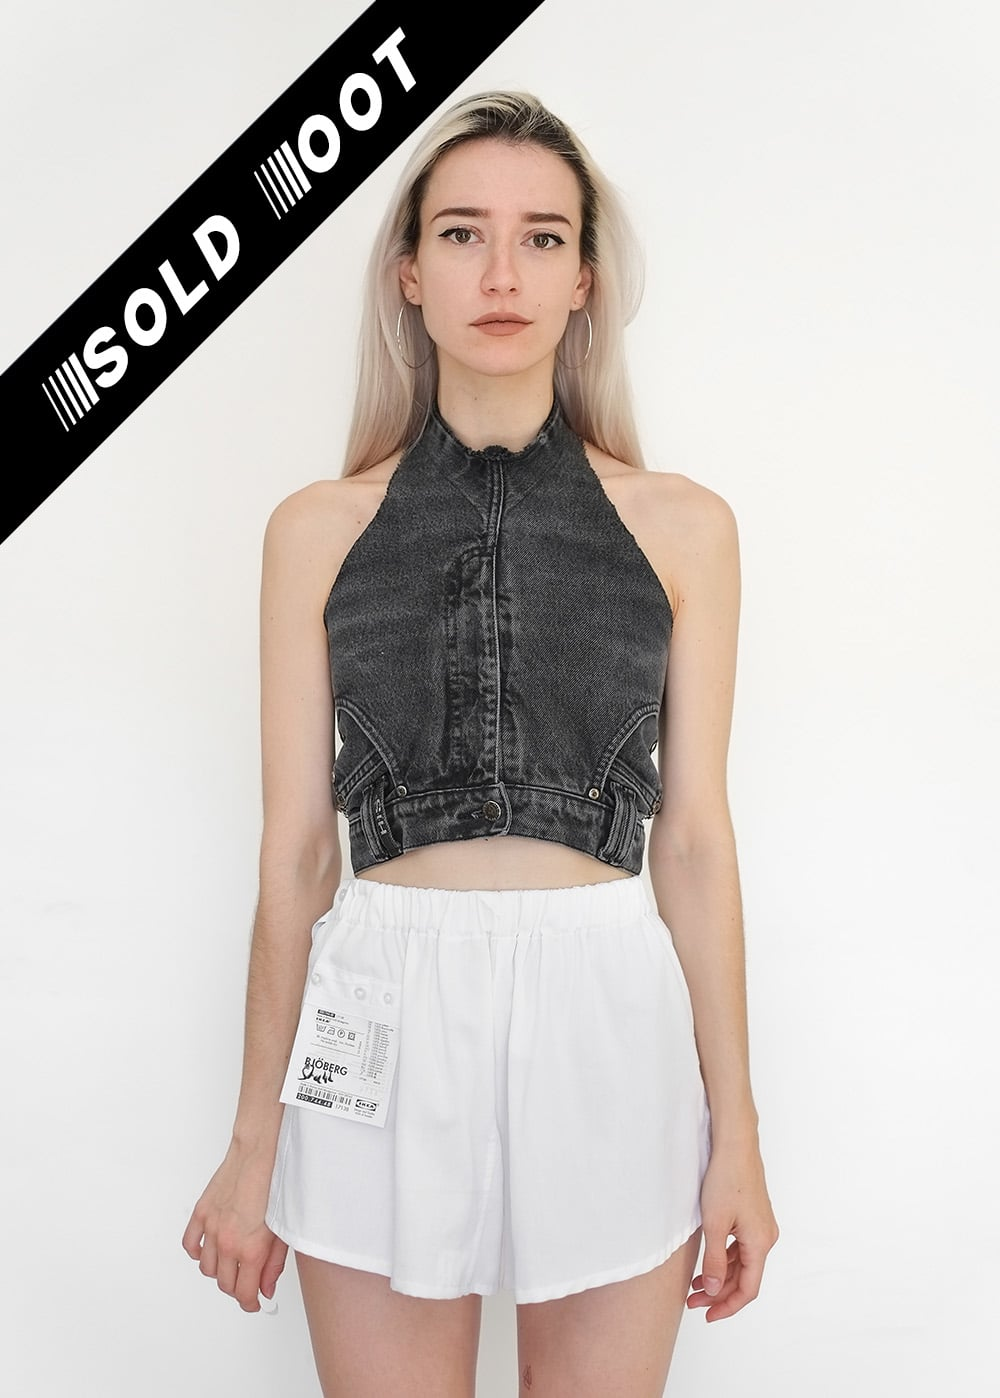 100% Upcycled Denim Chain Top 377